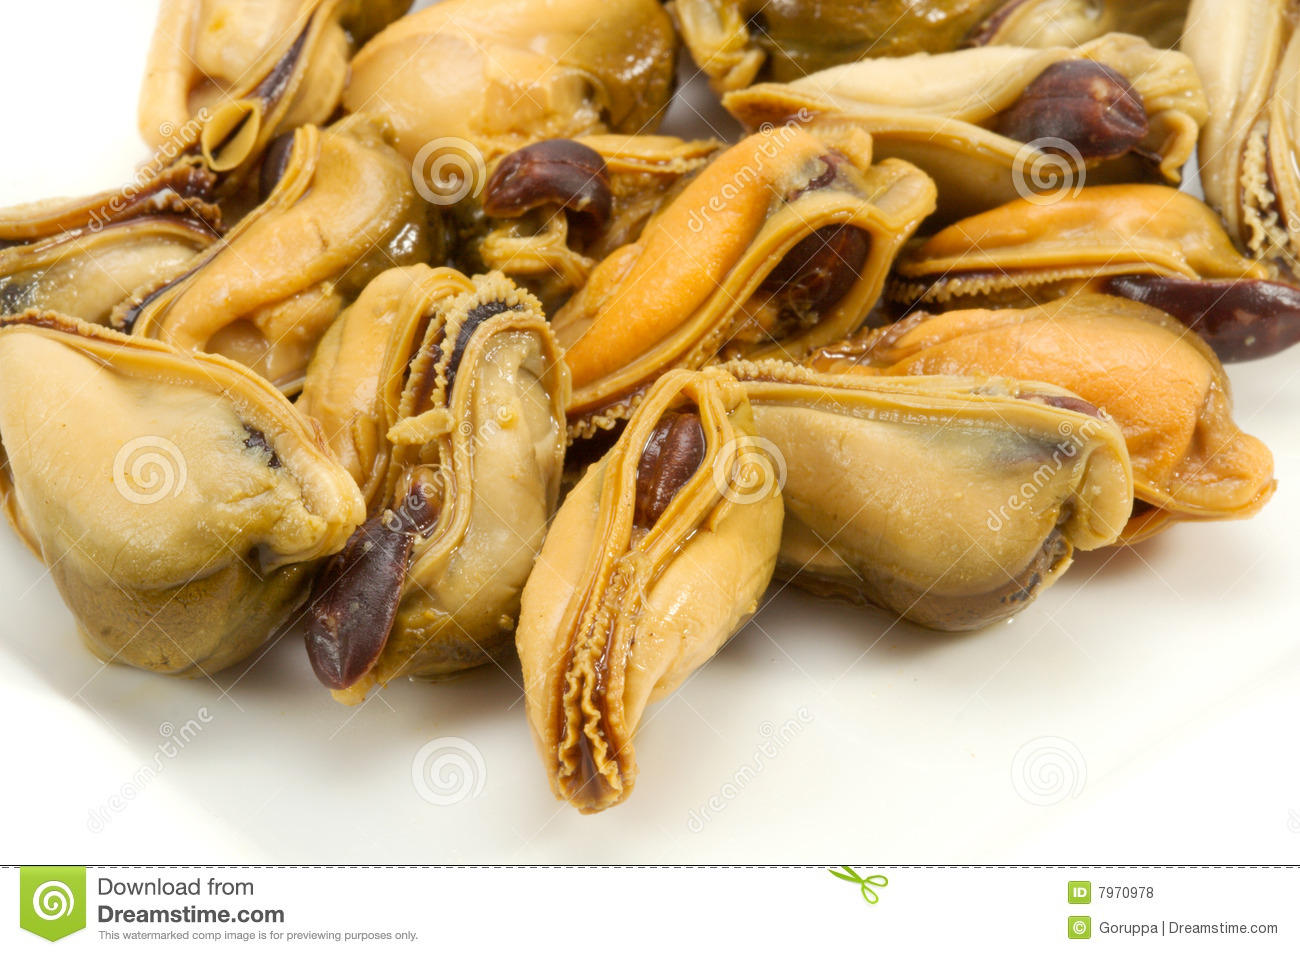 The cleared and pickled mussels on a white background.